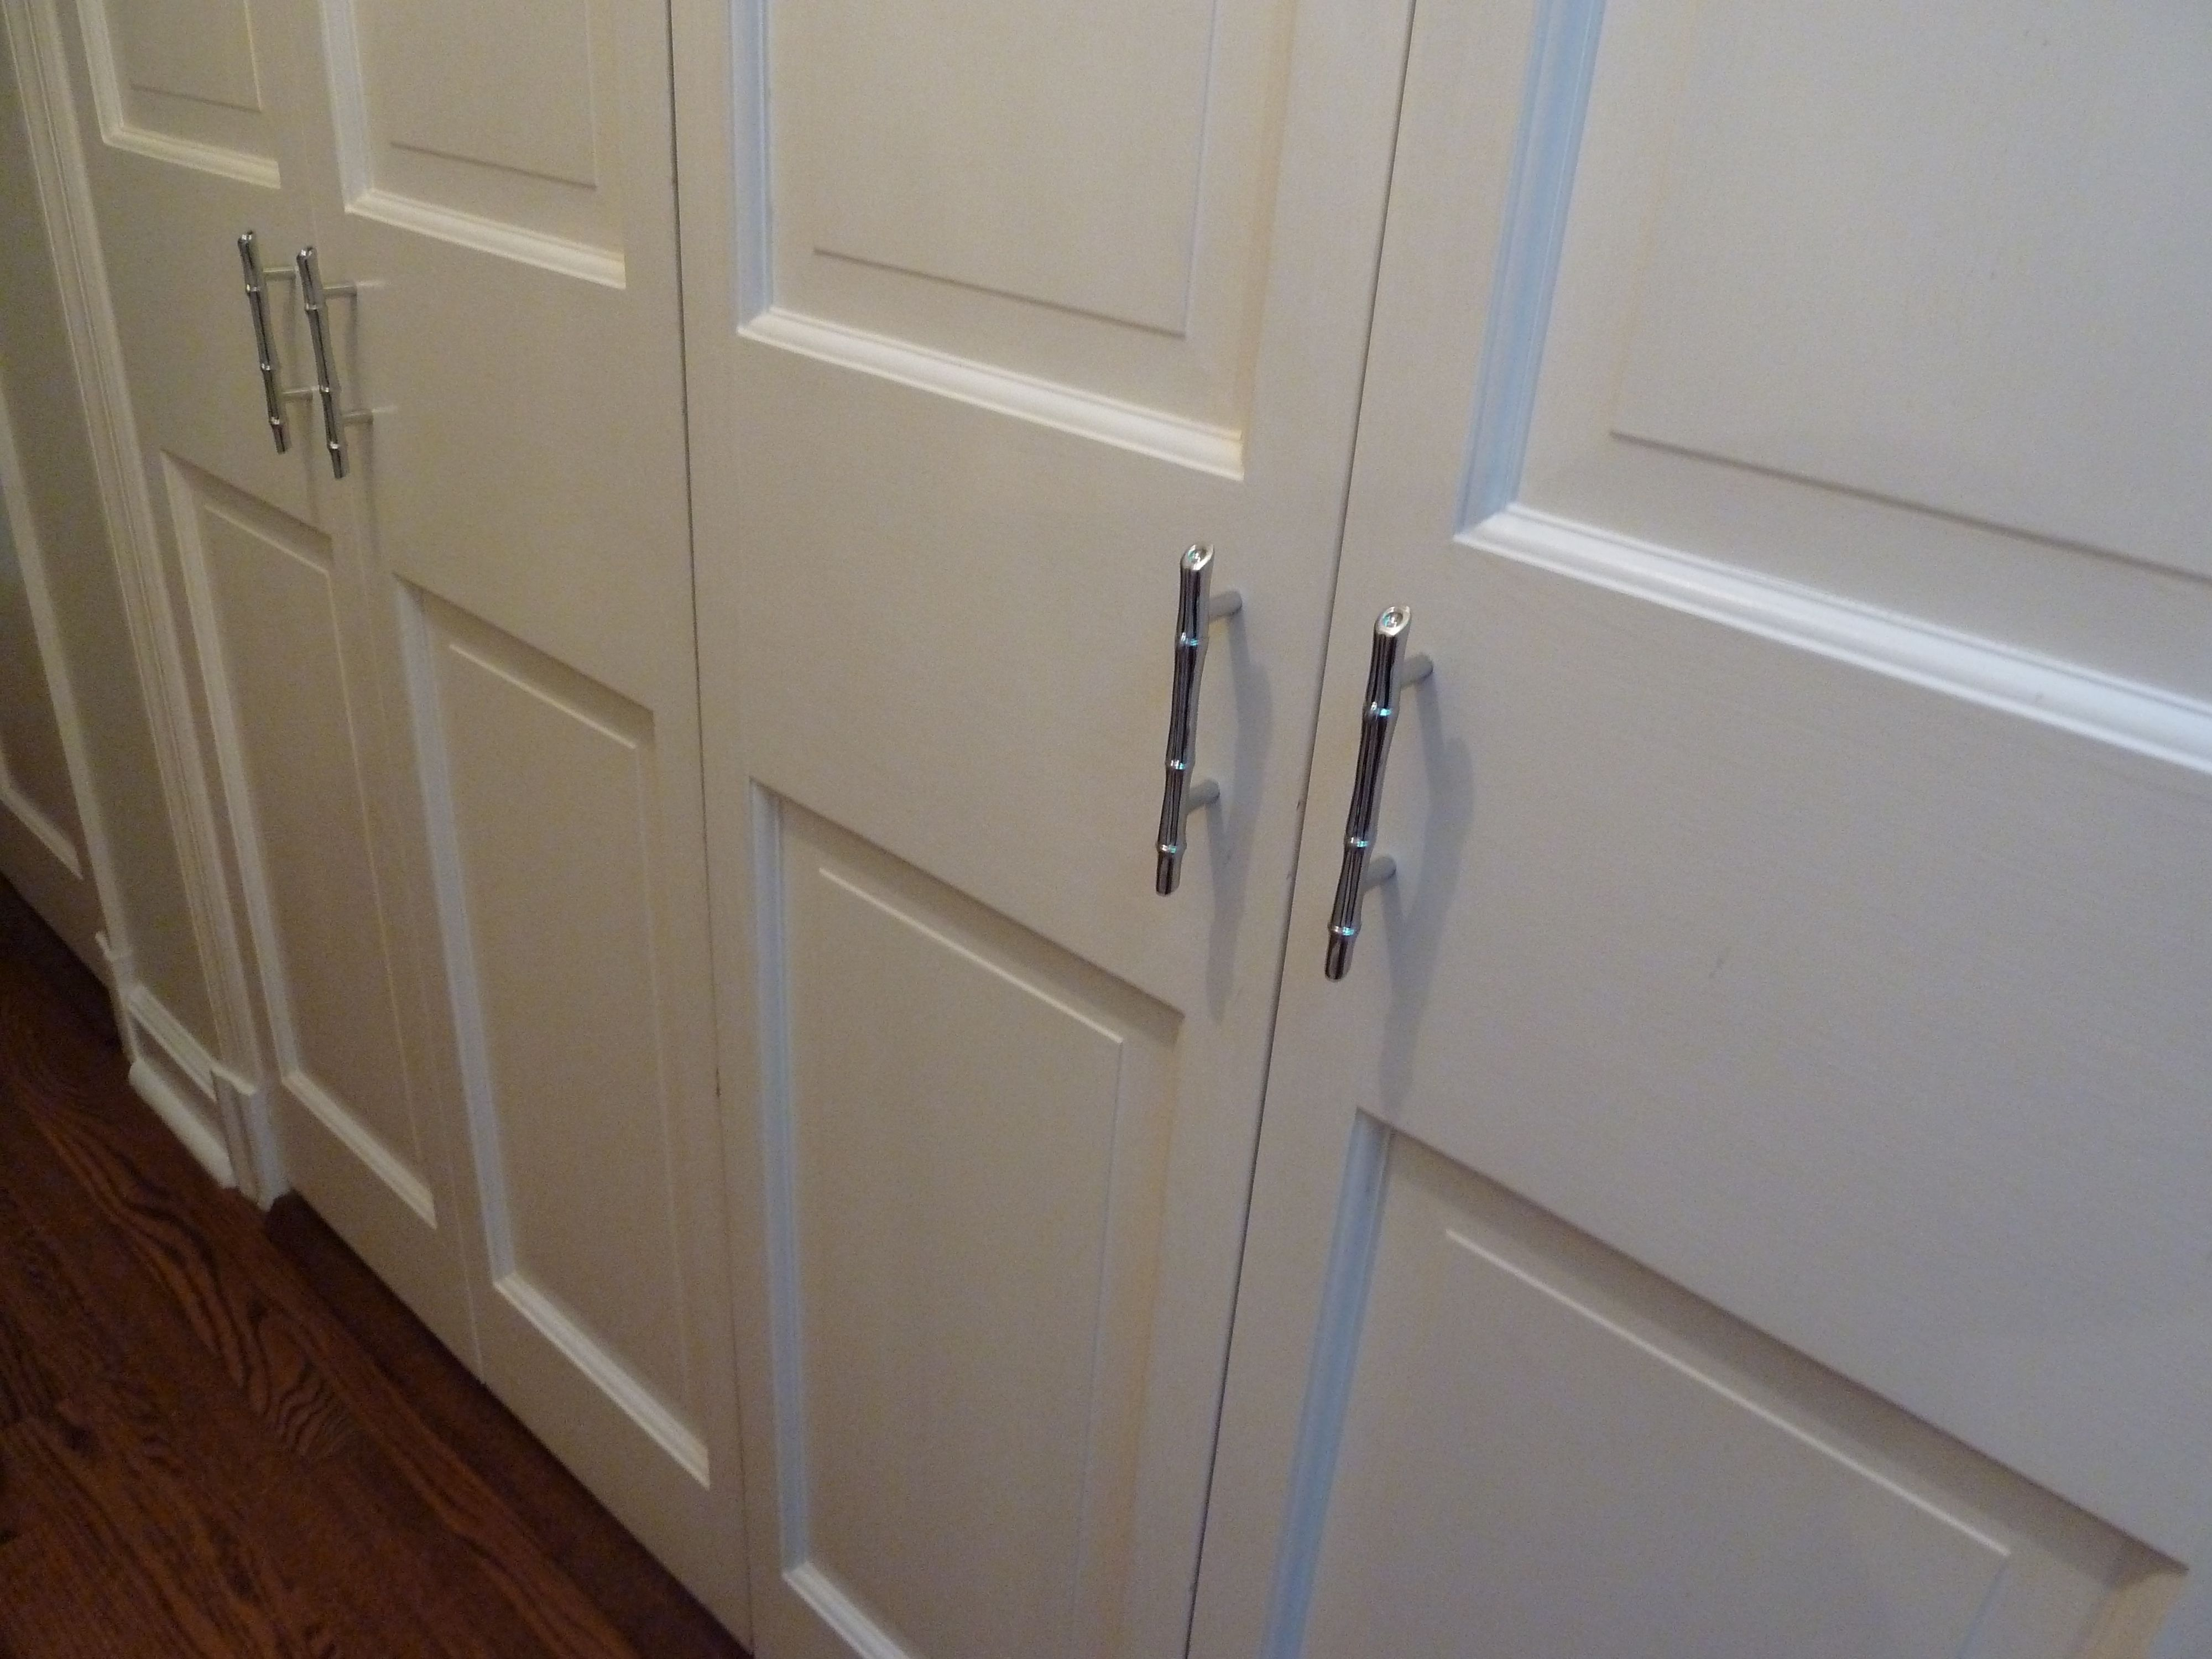 pass handles pulls by pull bz knobs and sliding door closet oblong hardware